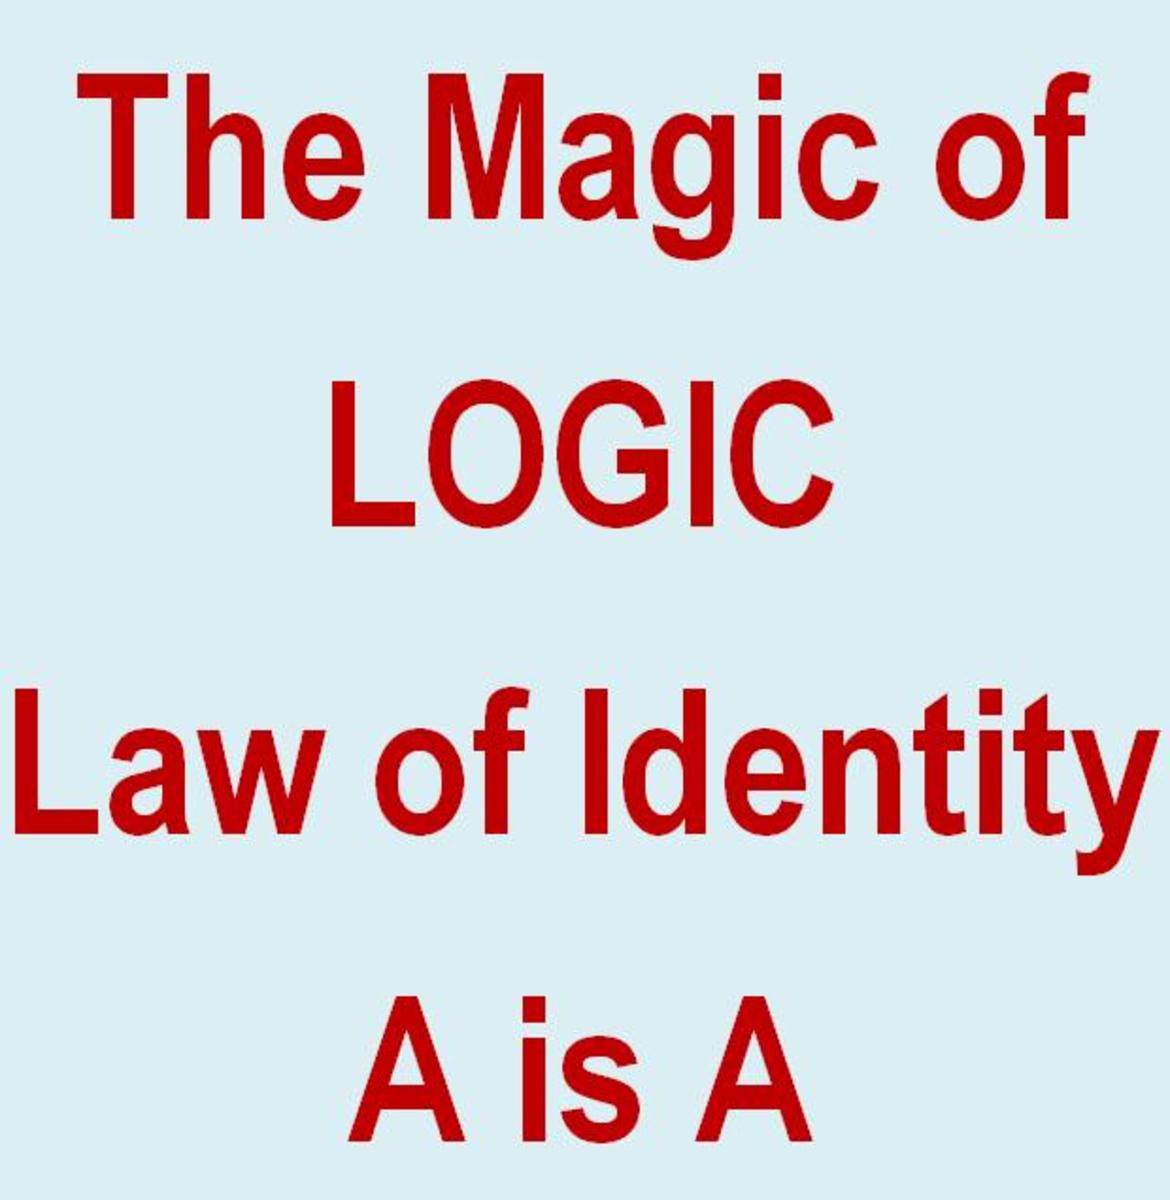 LOGIC - The Law of IDENTITY Axiom (A=A) is NOT True